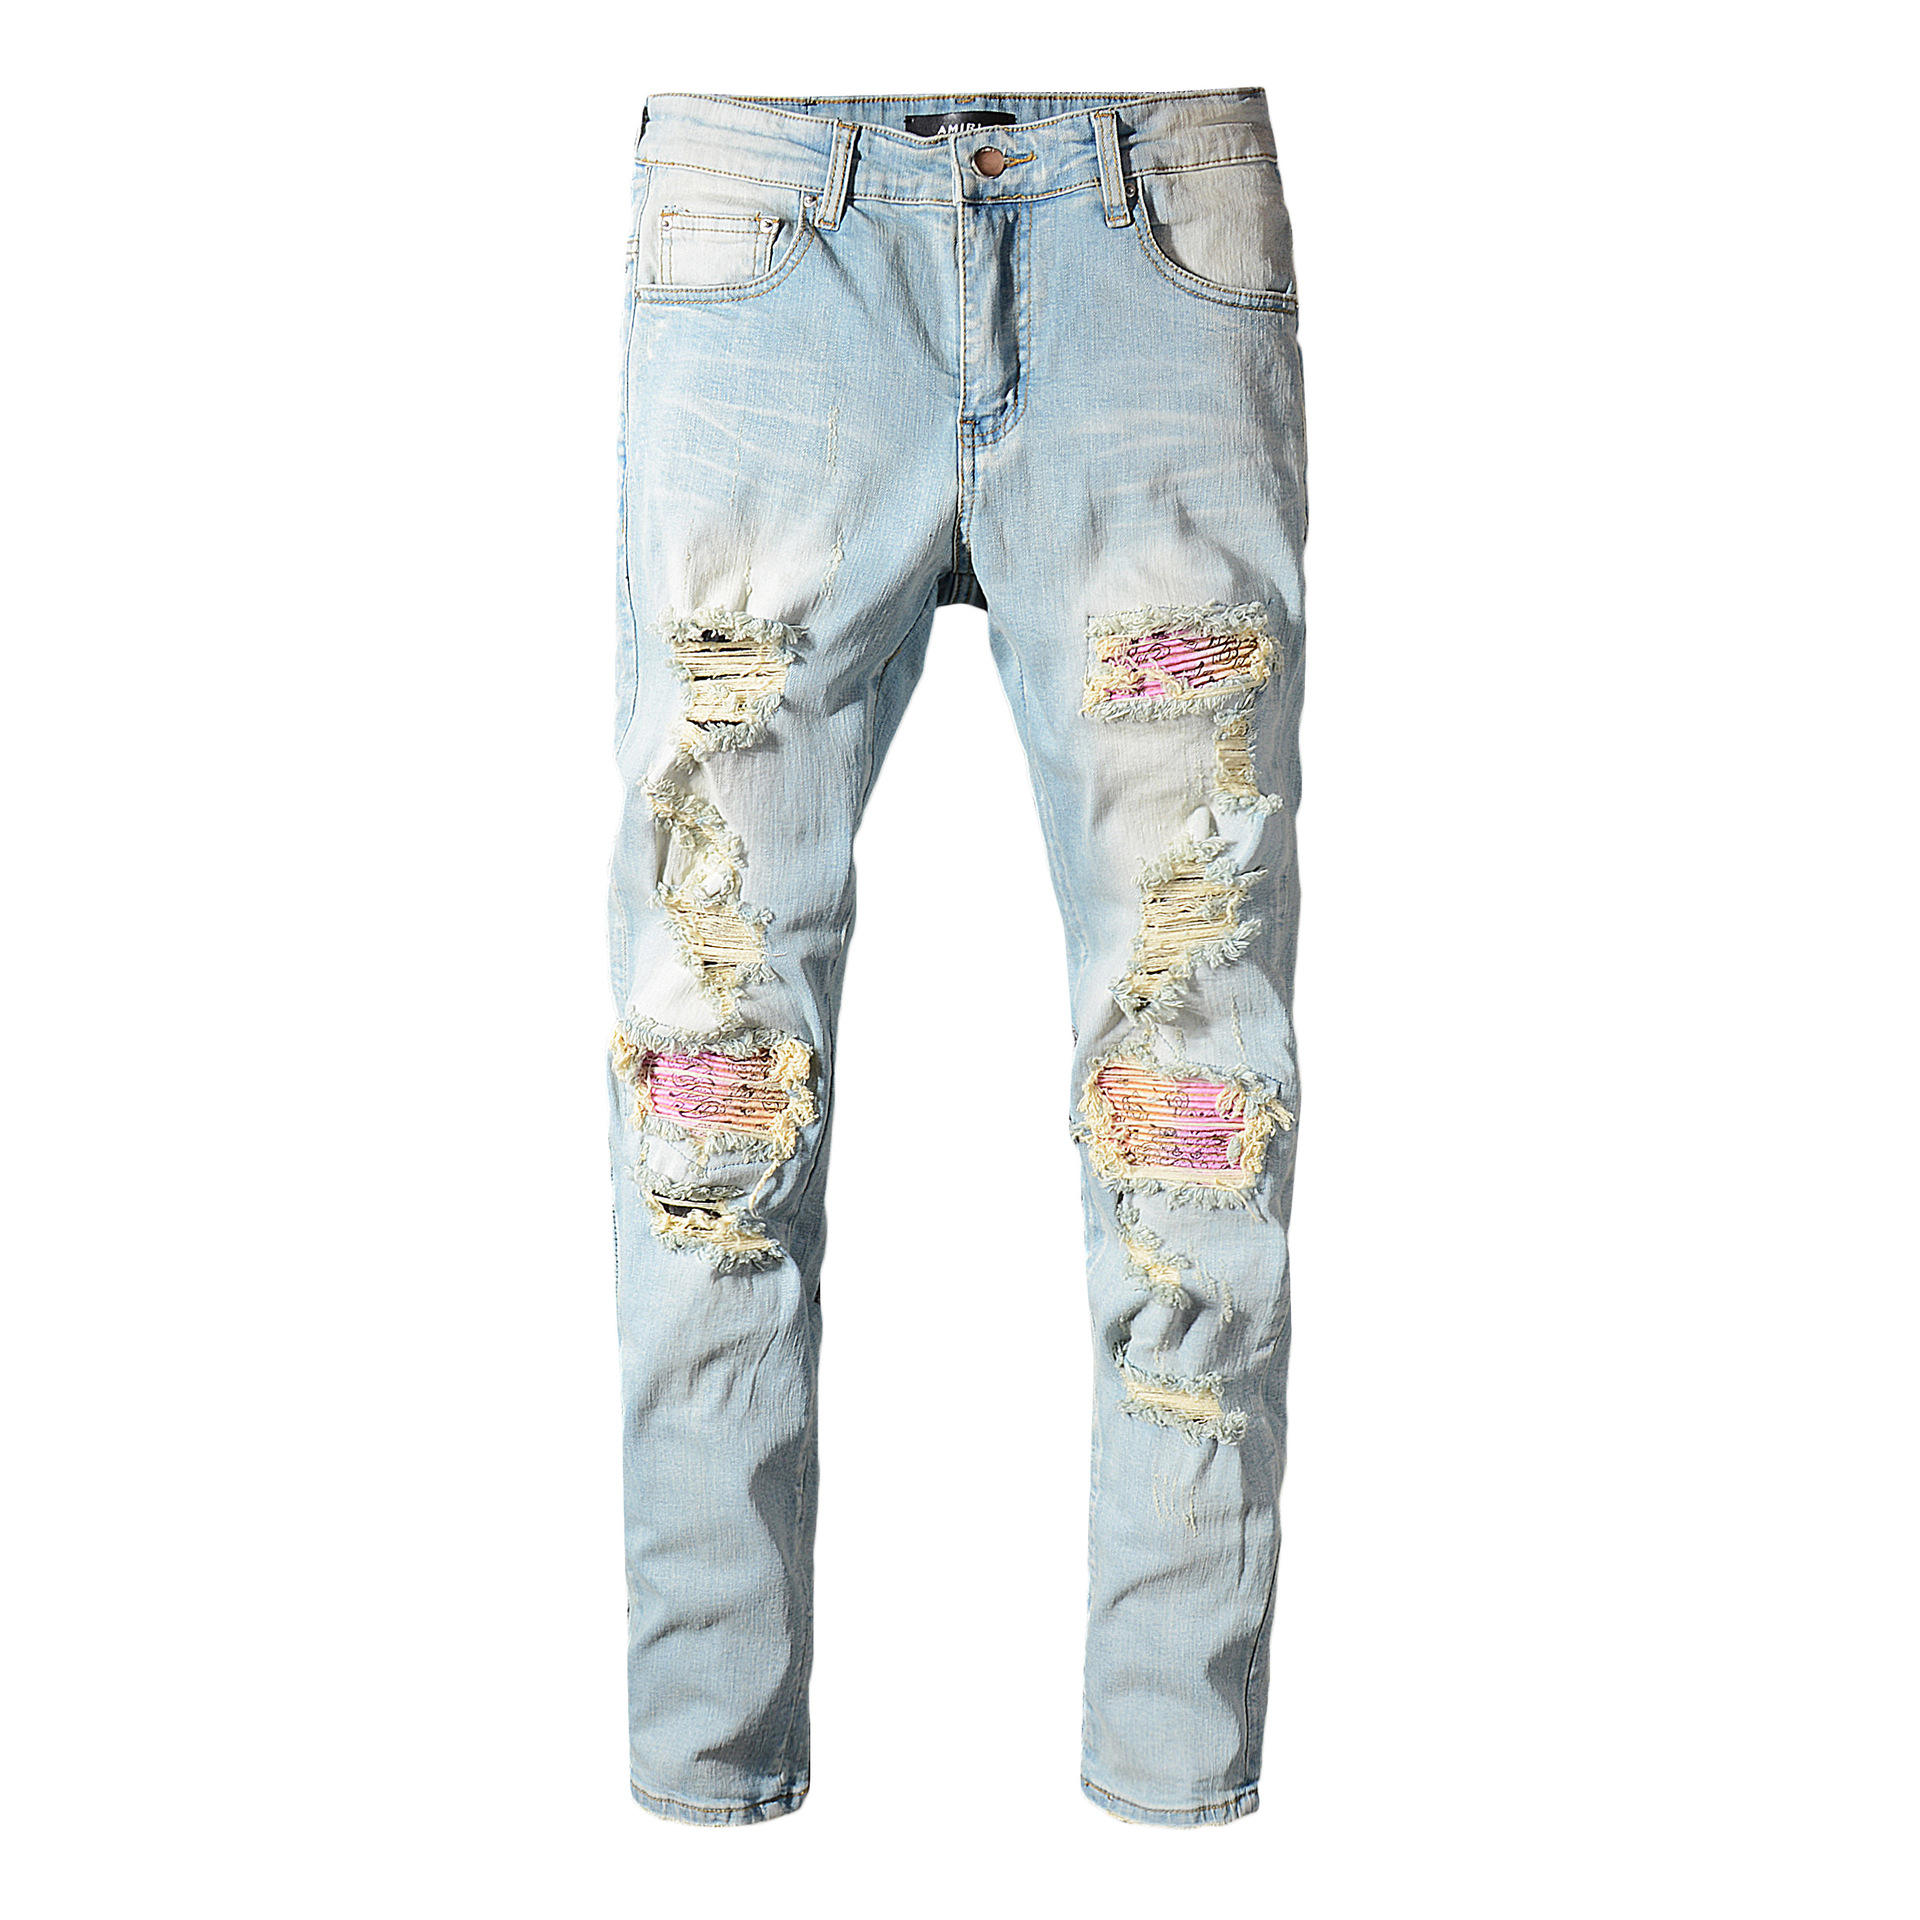 Factory Supplier Good Price Ripped Skinny Pants Denim Jeans Men